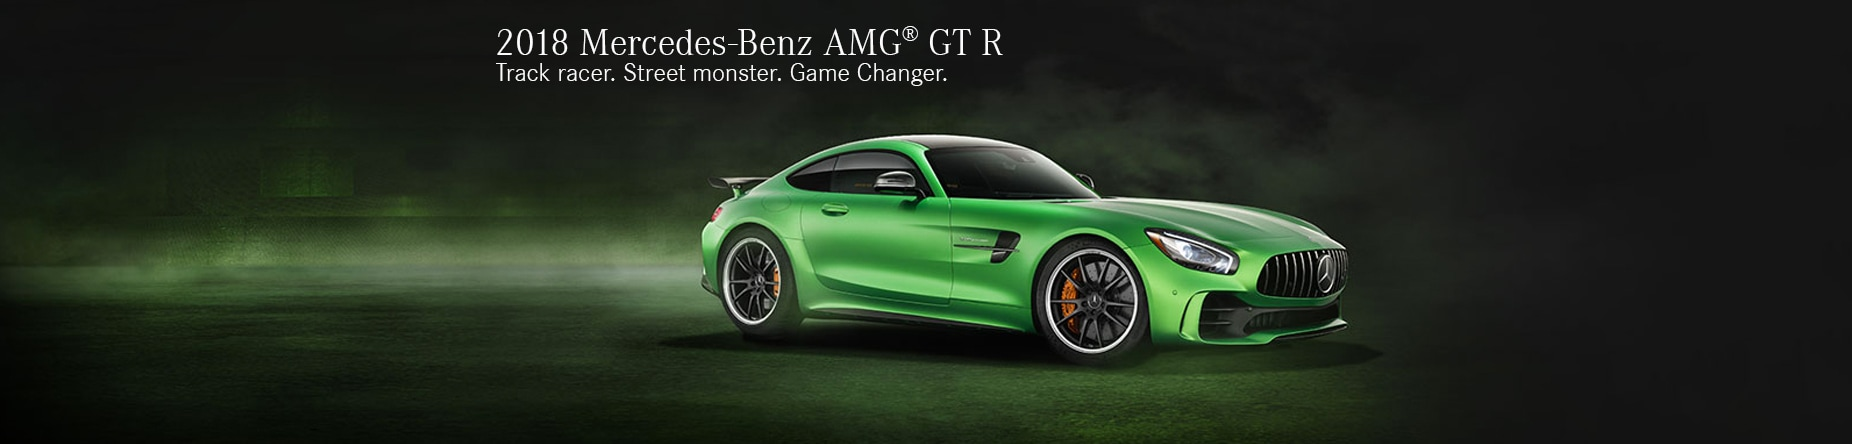 2018 mercedes amg gt r mercedes benz gt r coming soon. Black Bedroom Furniture Sets. Home Design Ideas